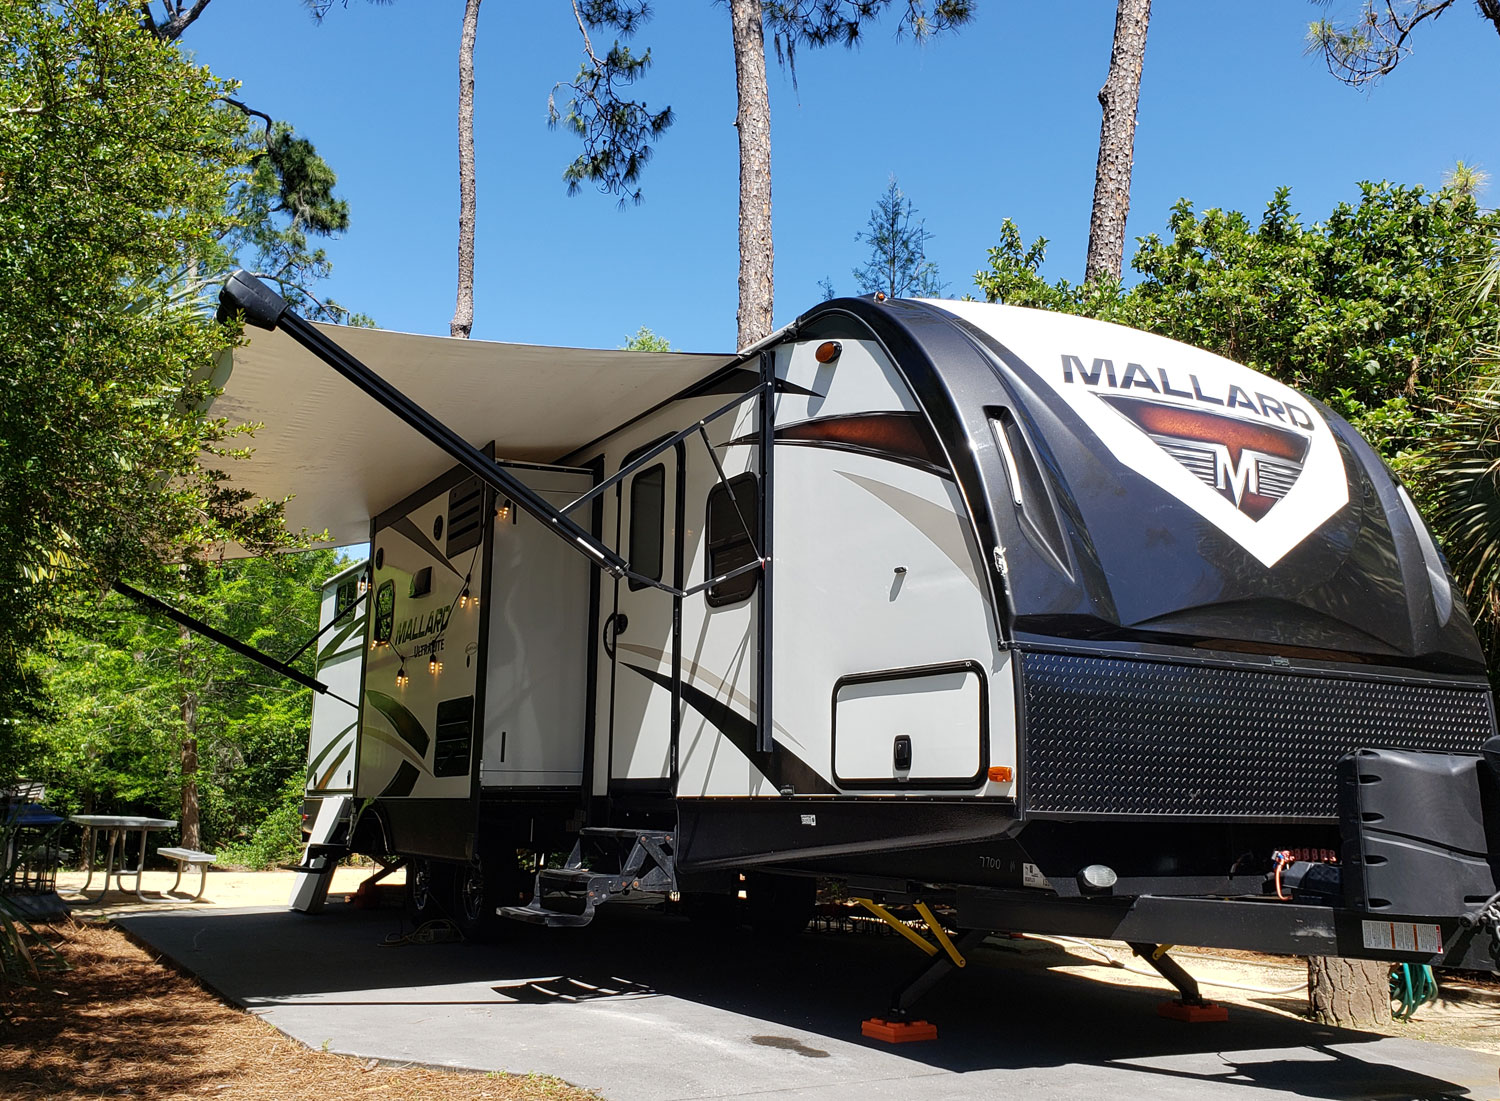 M33_camper_rental-fort_4.jpg